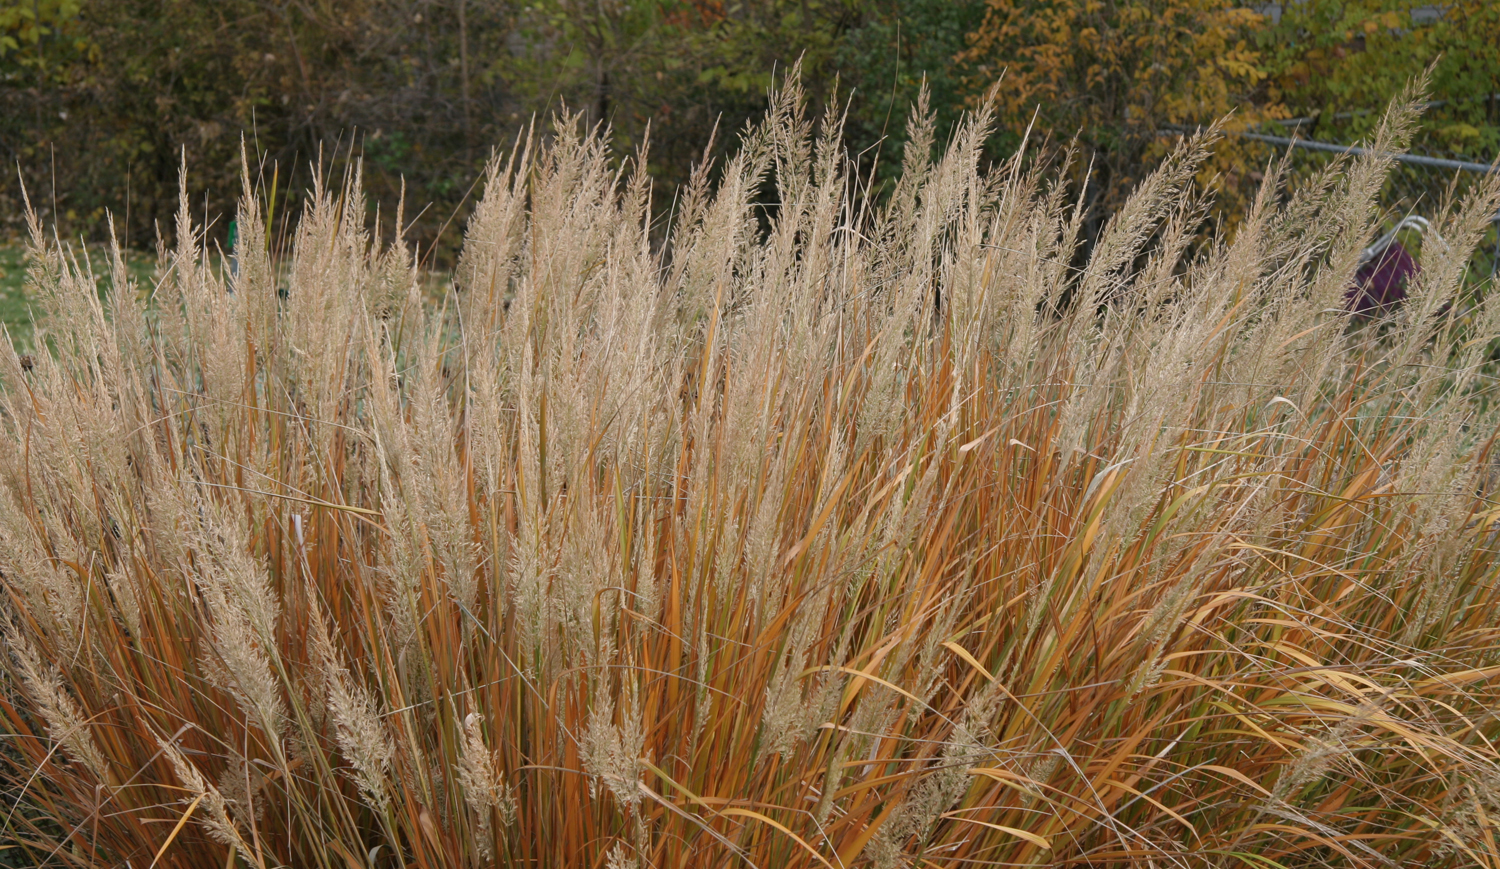 Korean Feather Reed Grass has beautiful fall foliage that persists into winter.